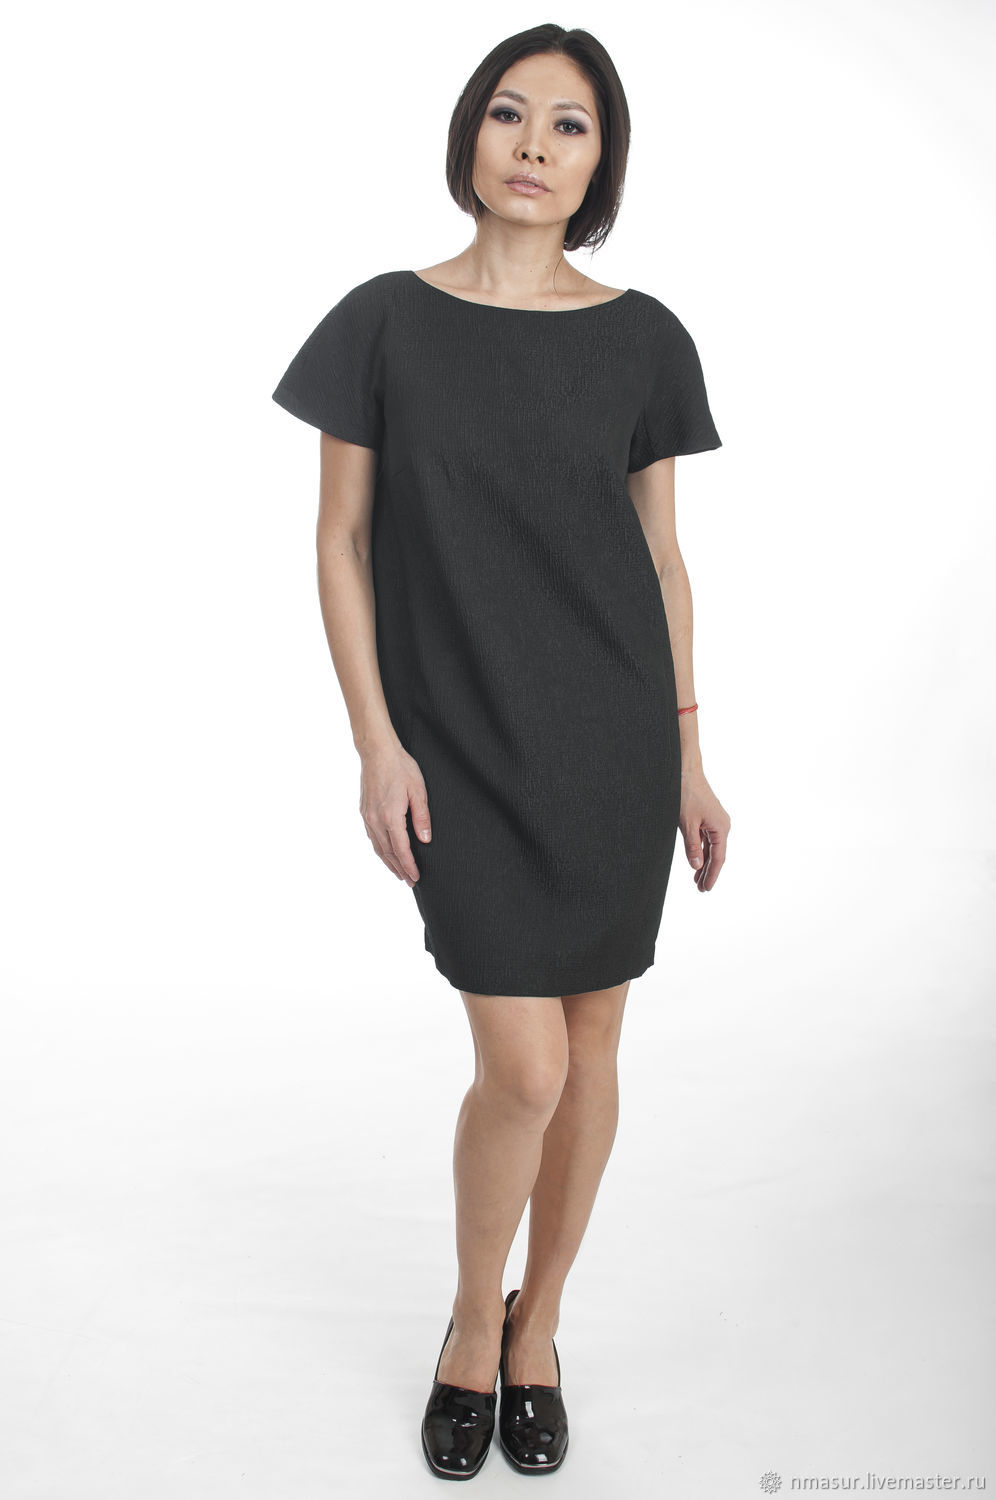 A black dress is a wardrobe staple that every woman should own. Whether you choose the classic little black dress, a short sexy black cocktail party dress, a knee-length black homecoming dress, or a long black formal gown, this timeless look is forever in style.